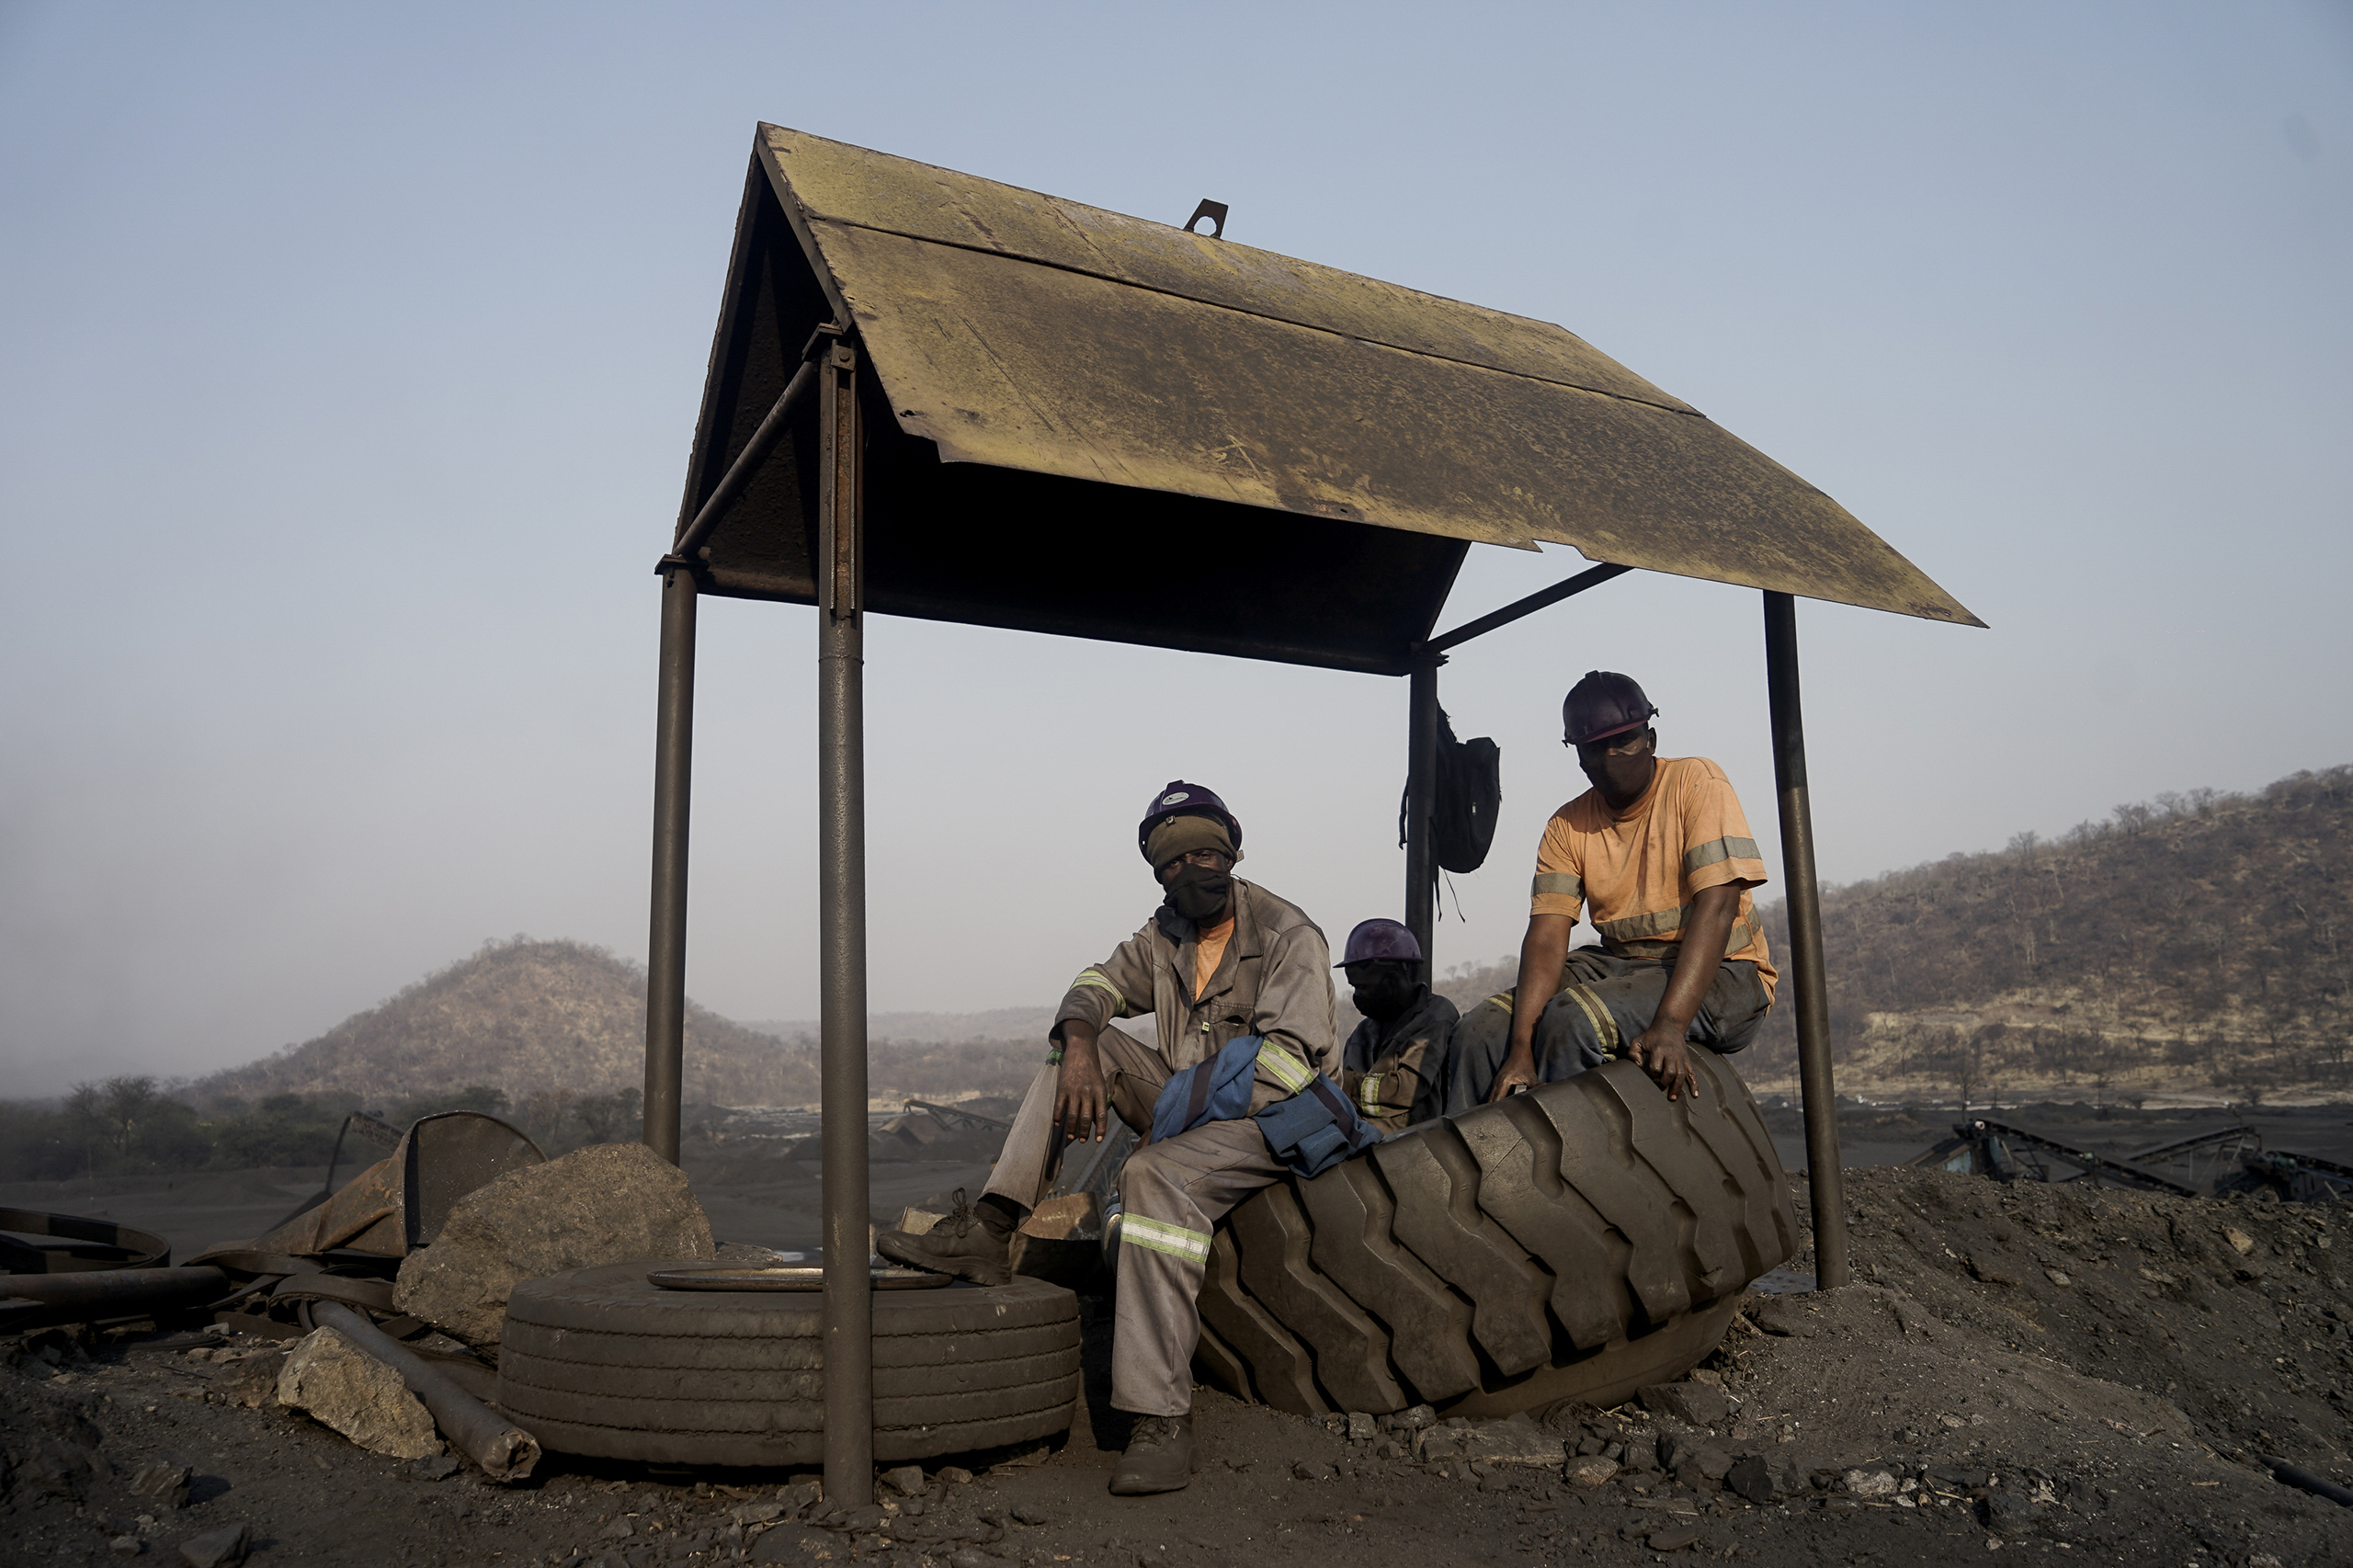 Miners take a break at a Makomo Resources coal mine in Hwange. Makomo and Zambezi Gas are some of the newer players in Hwange's coal-mining scene. (Image: KB Mpofu / China Dialogue)